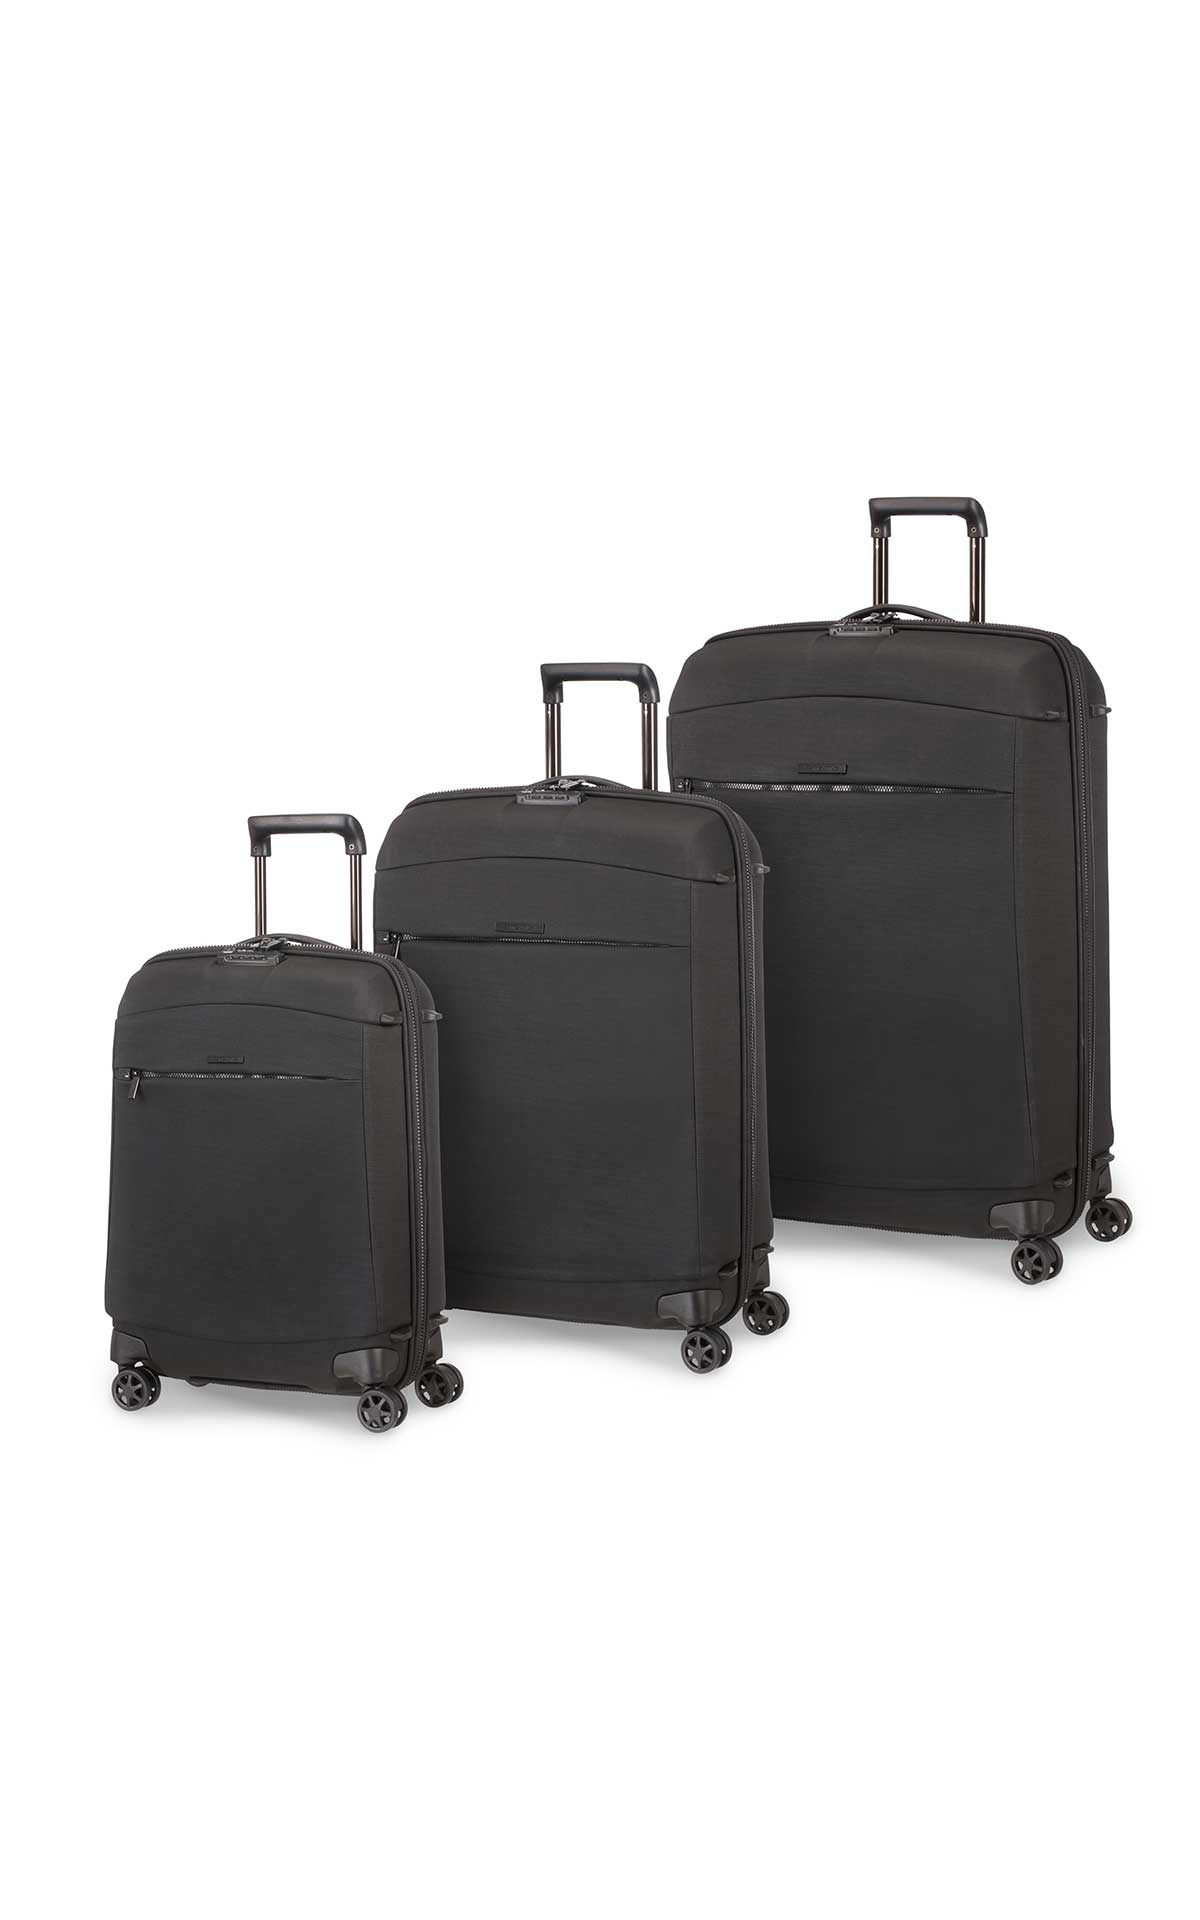 CrossJet luggage set Samsonite